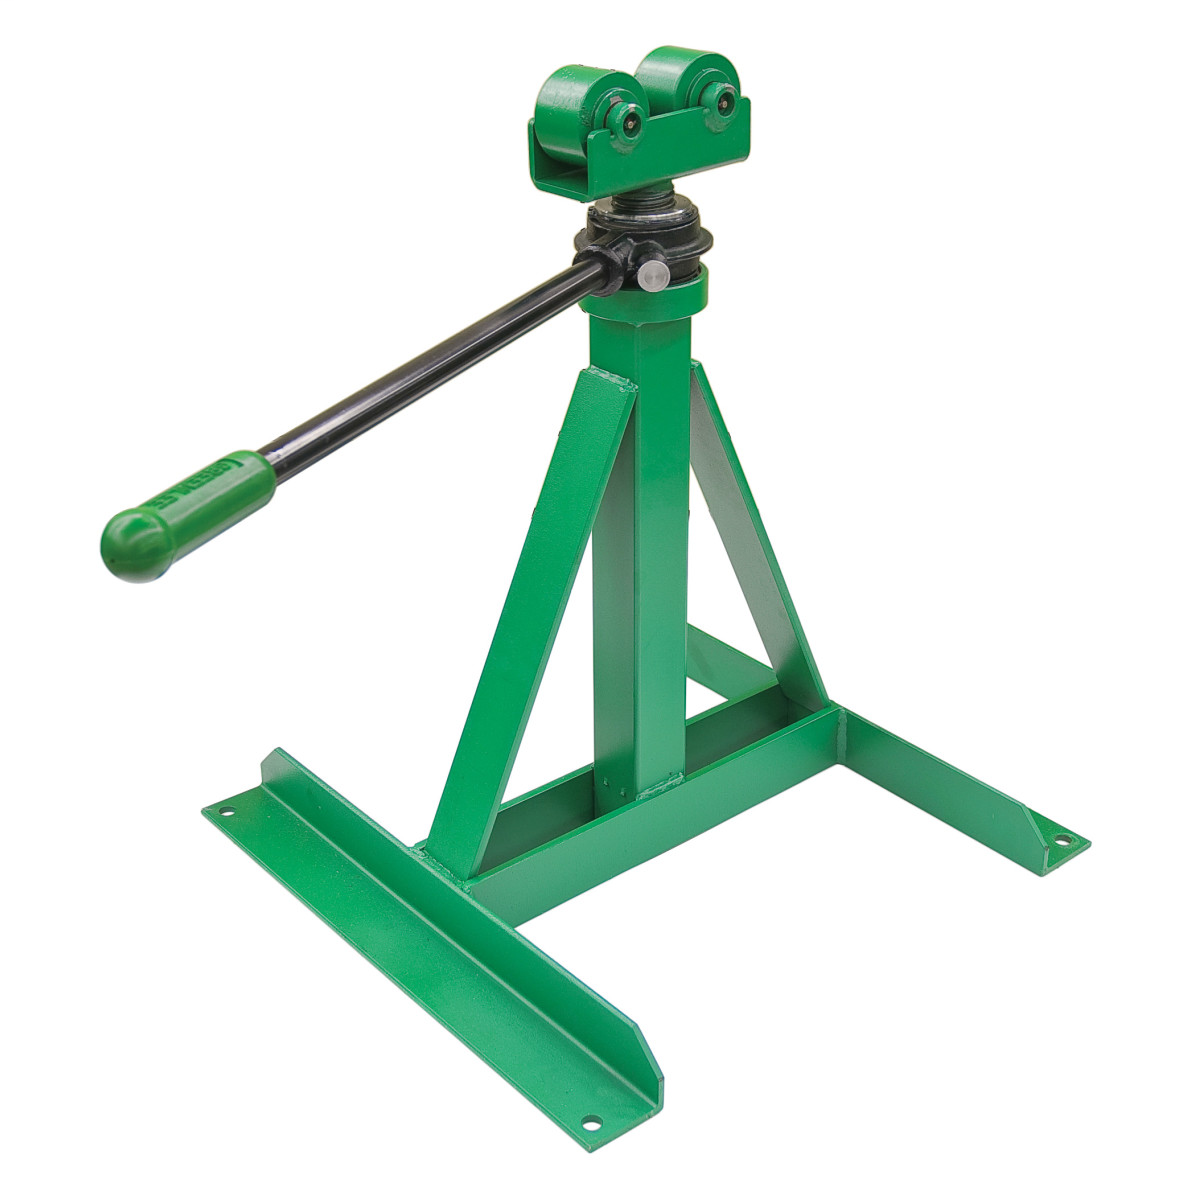 GREENLEE 656 RATCHET TYPE REEL STAND FOR 28-46-IN REELS